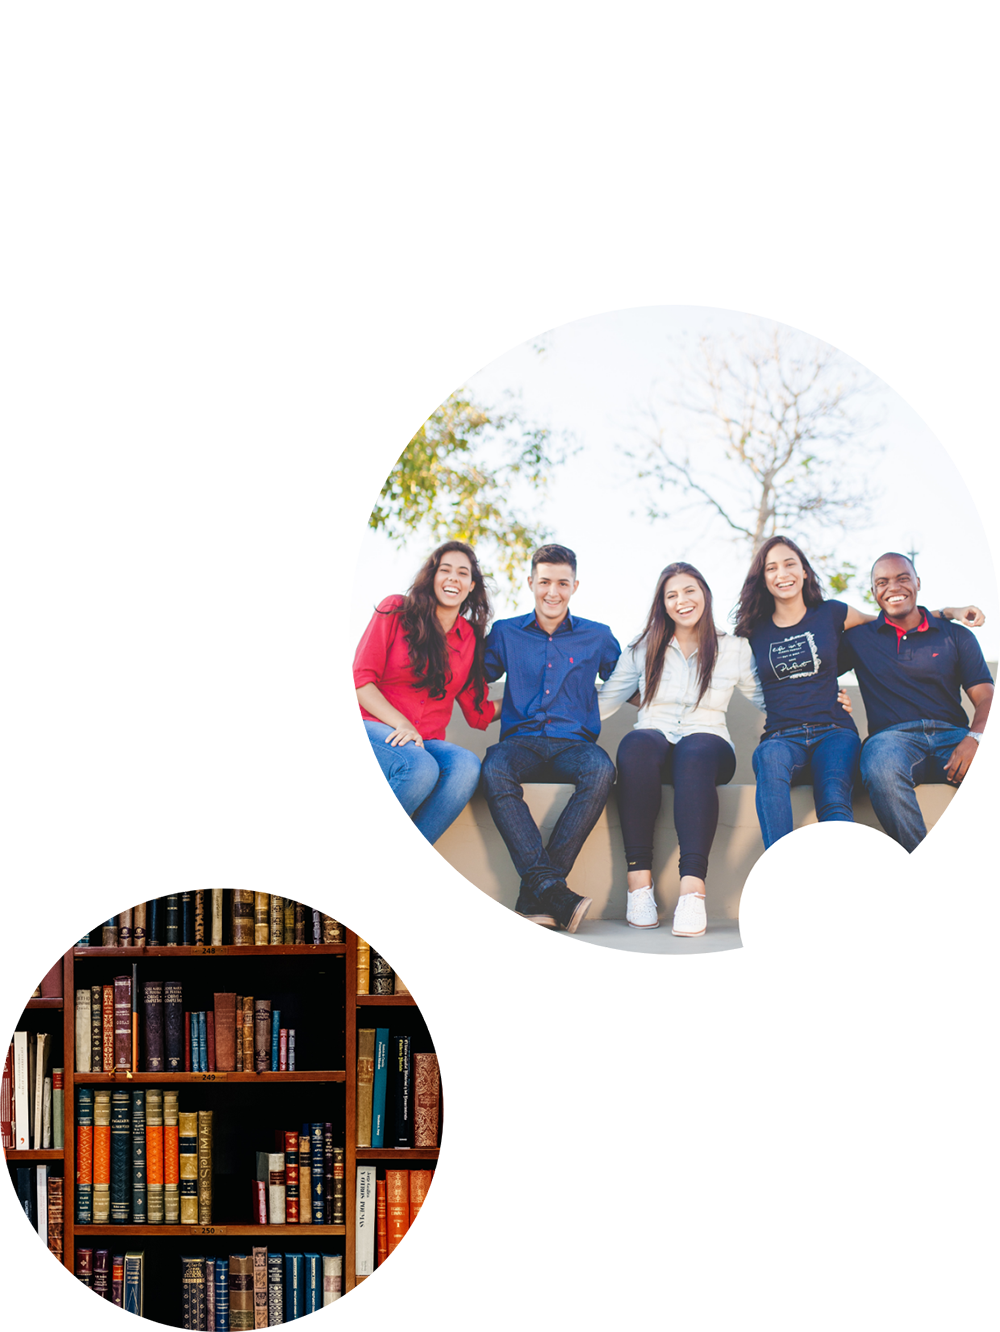 image of a group of students and a library 2